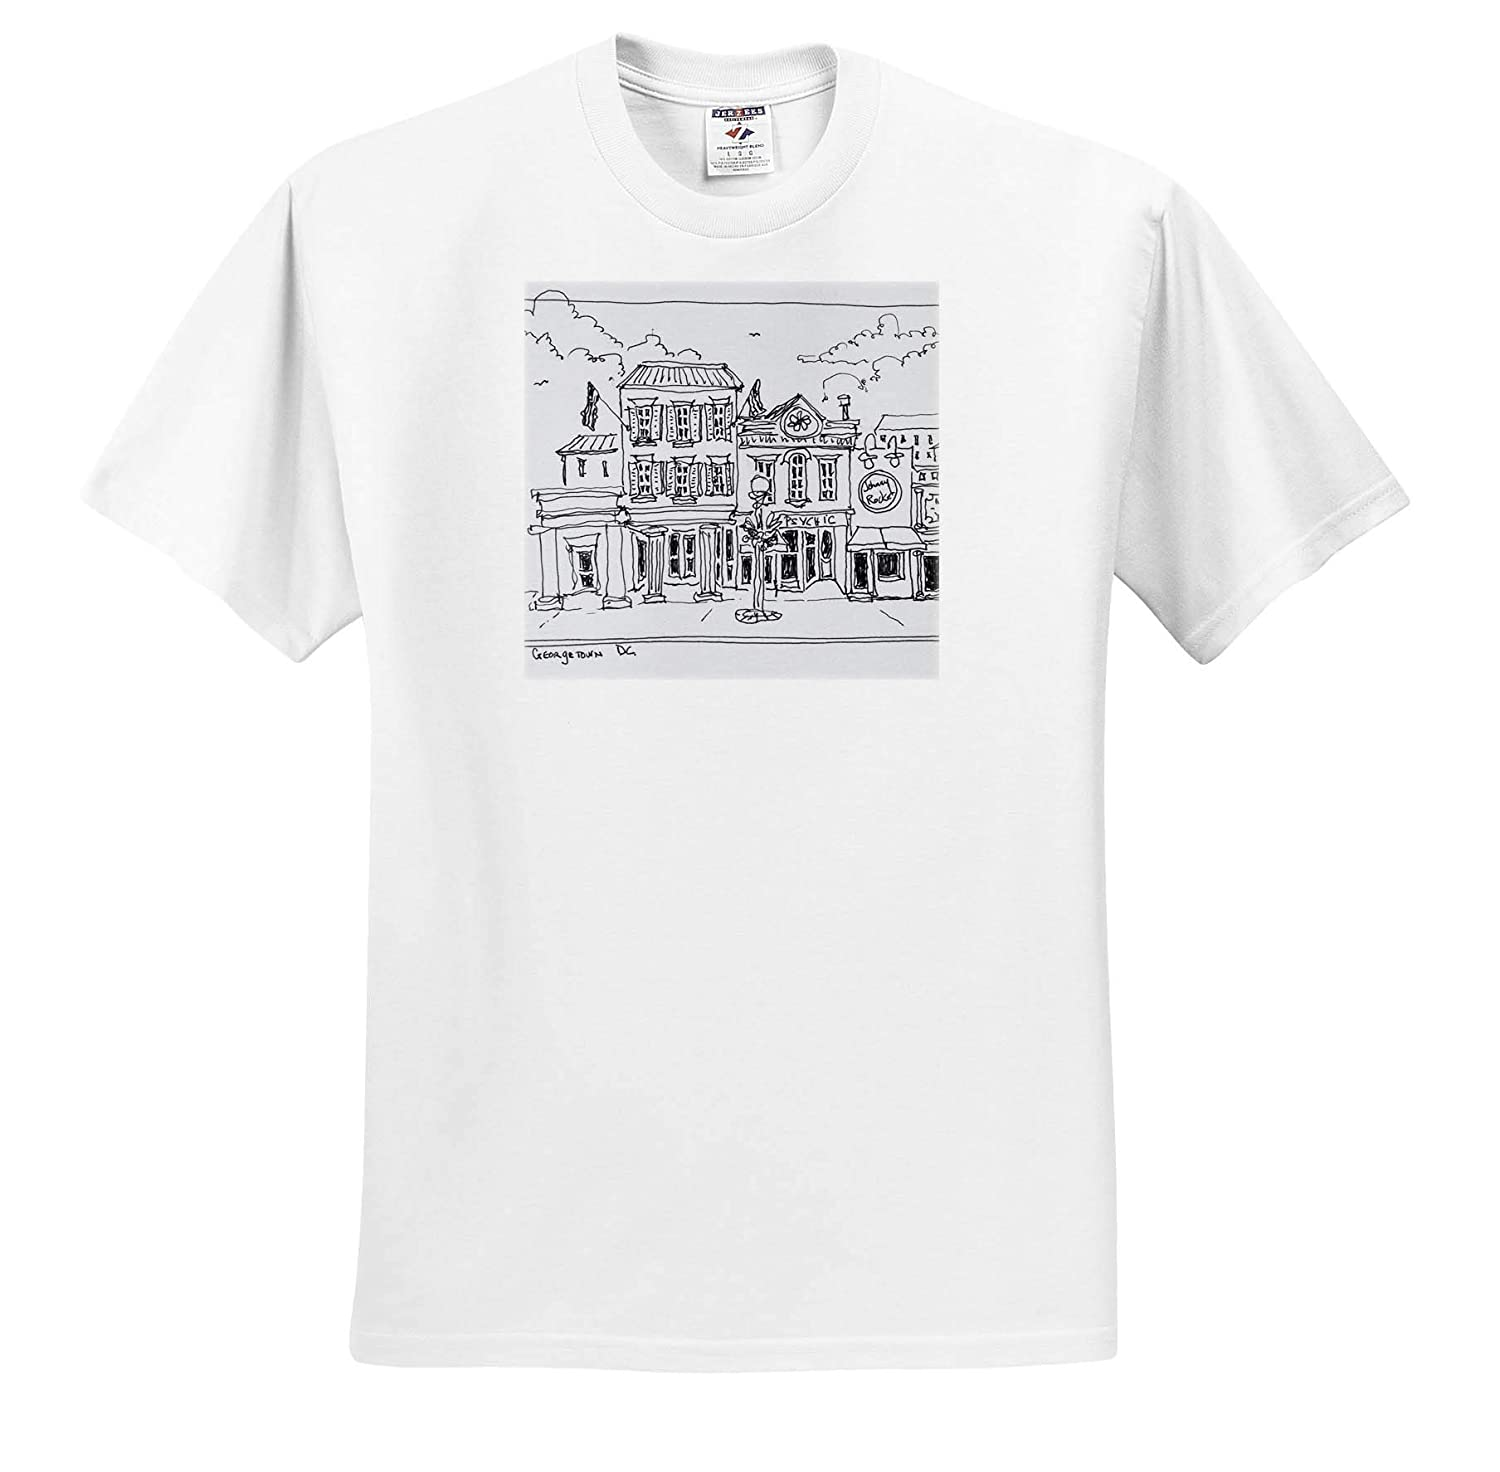 - Adult T-Shirt XL ts/_313043 Washington DC 3dRose Danita Delimont Washington DC Drawing of M Street in Georgetown